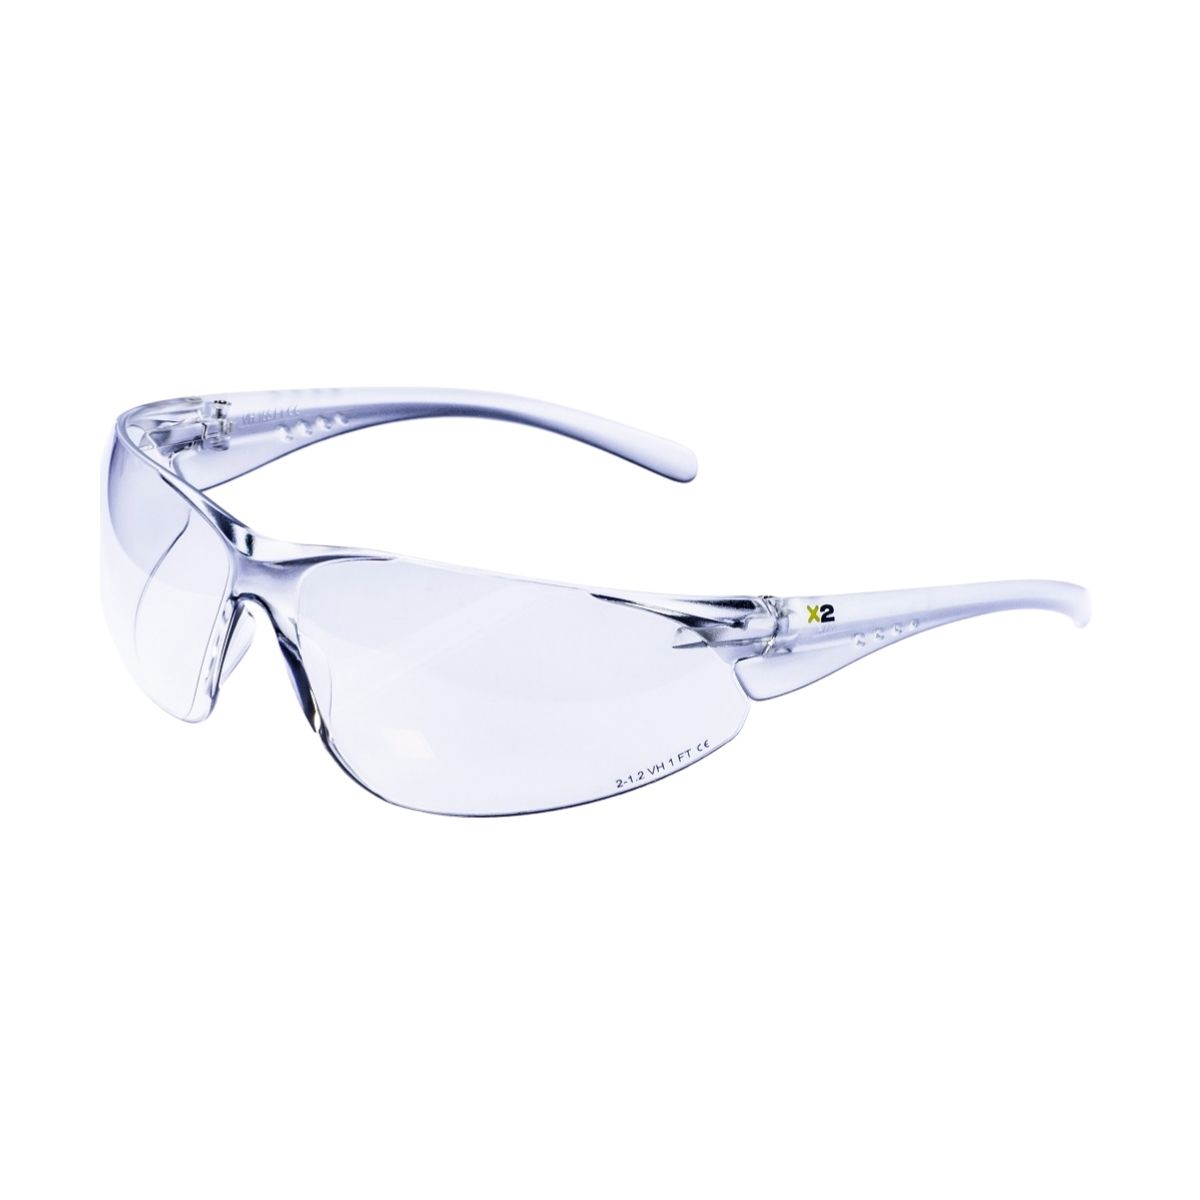 EW4111 Betafit Xcel Anti-Scratch Safety Glasses